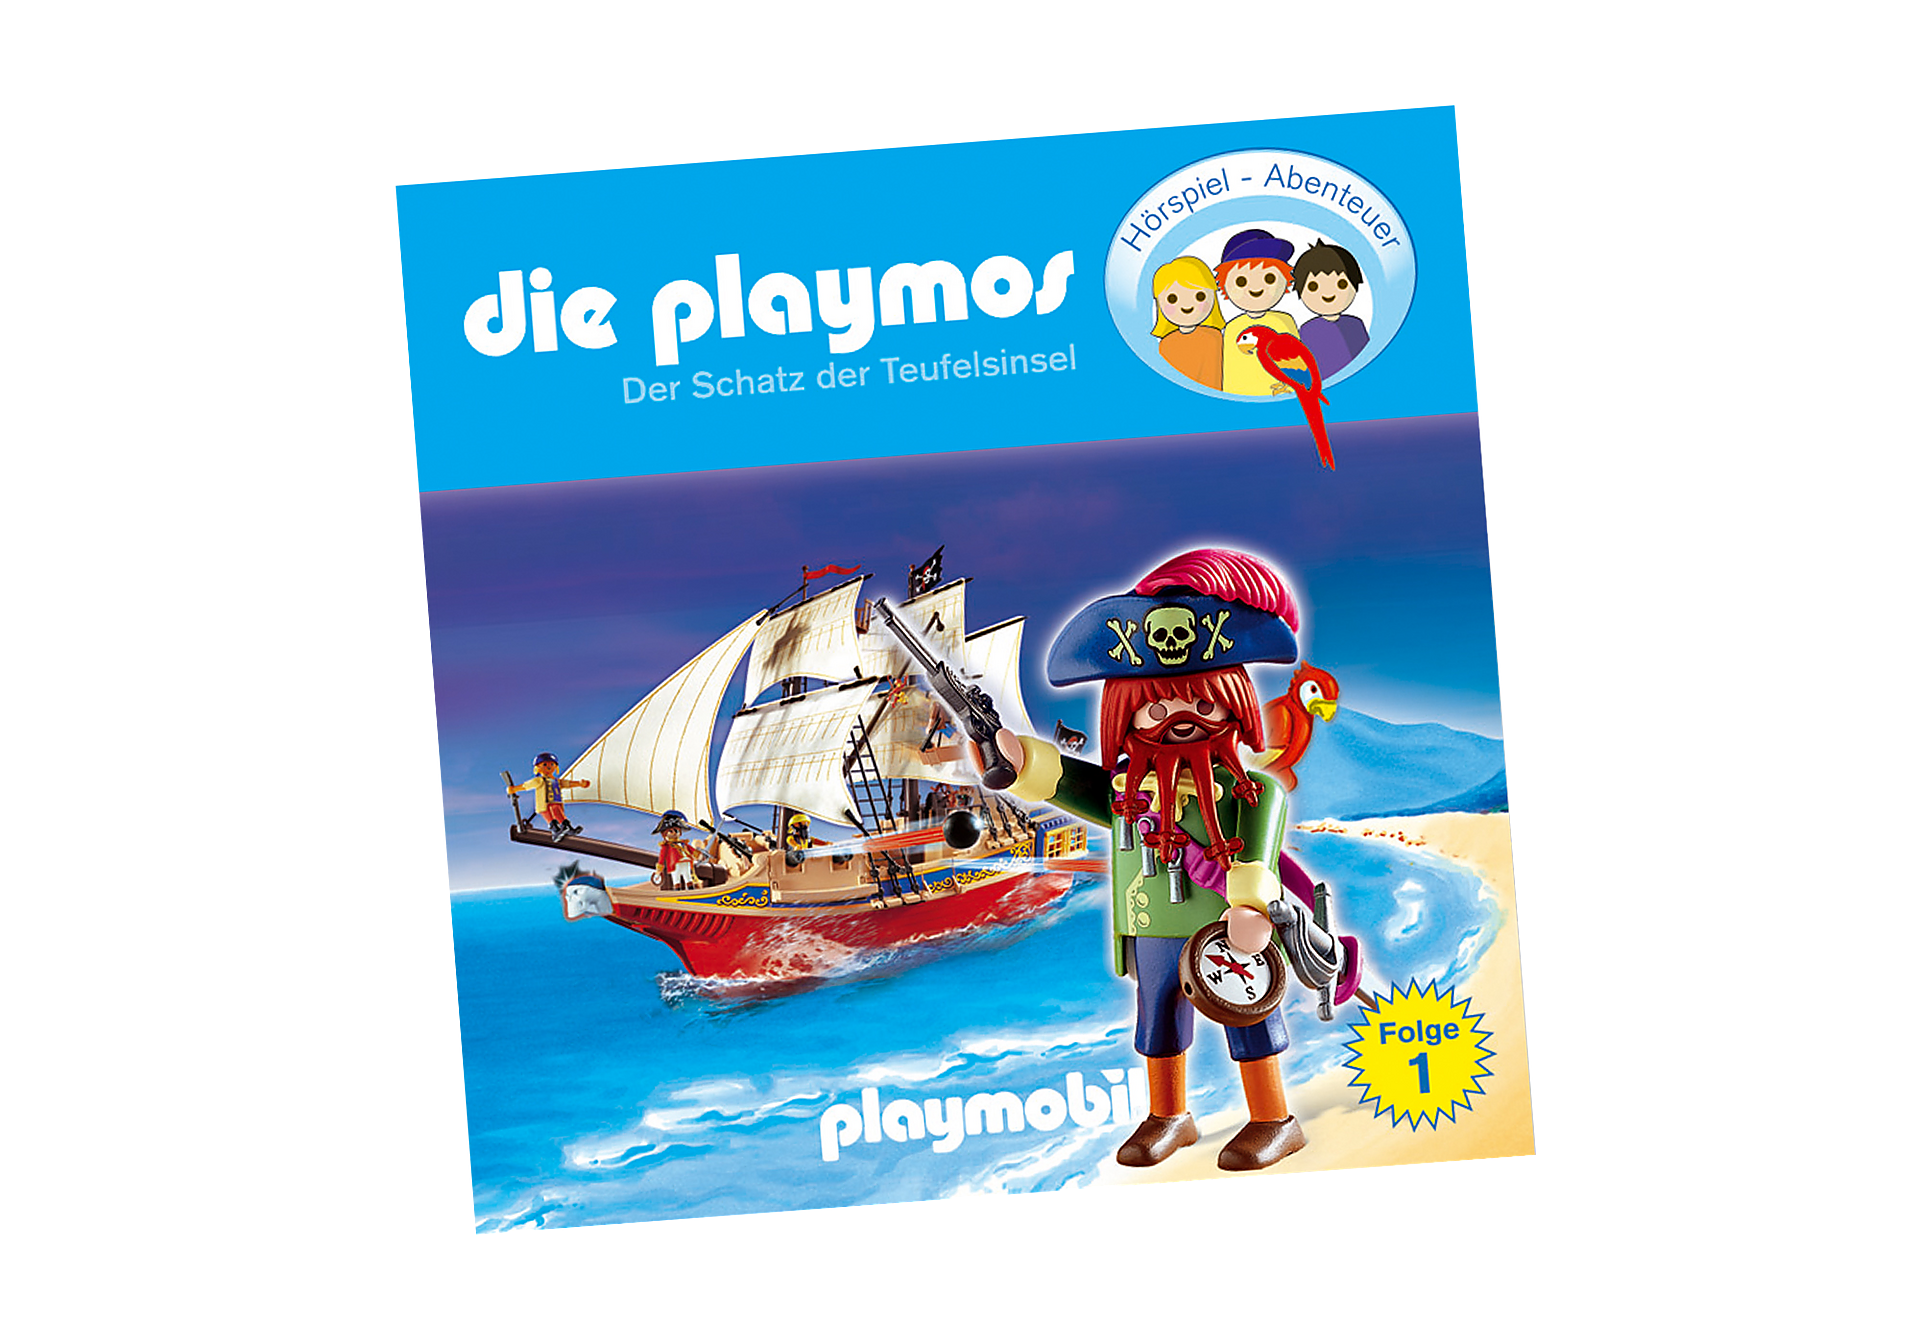 http://media.playmobil.com/i/playmobil/80128_product_detail/Der Schatz der Teufelsinsel (1) - CD